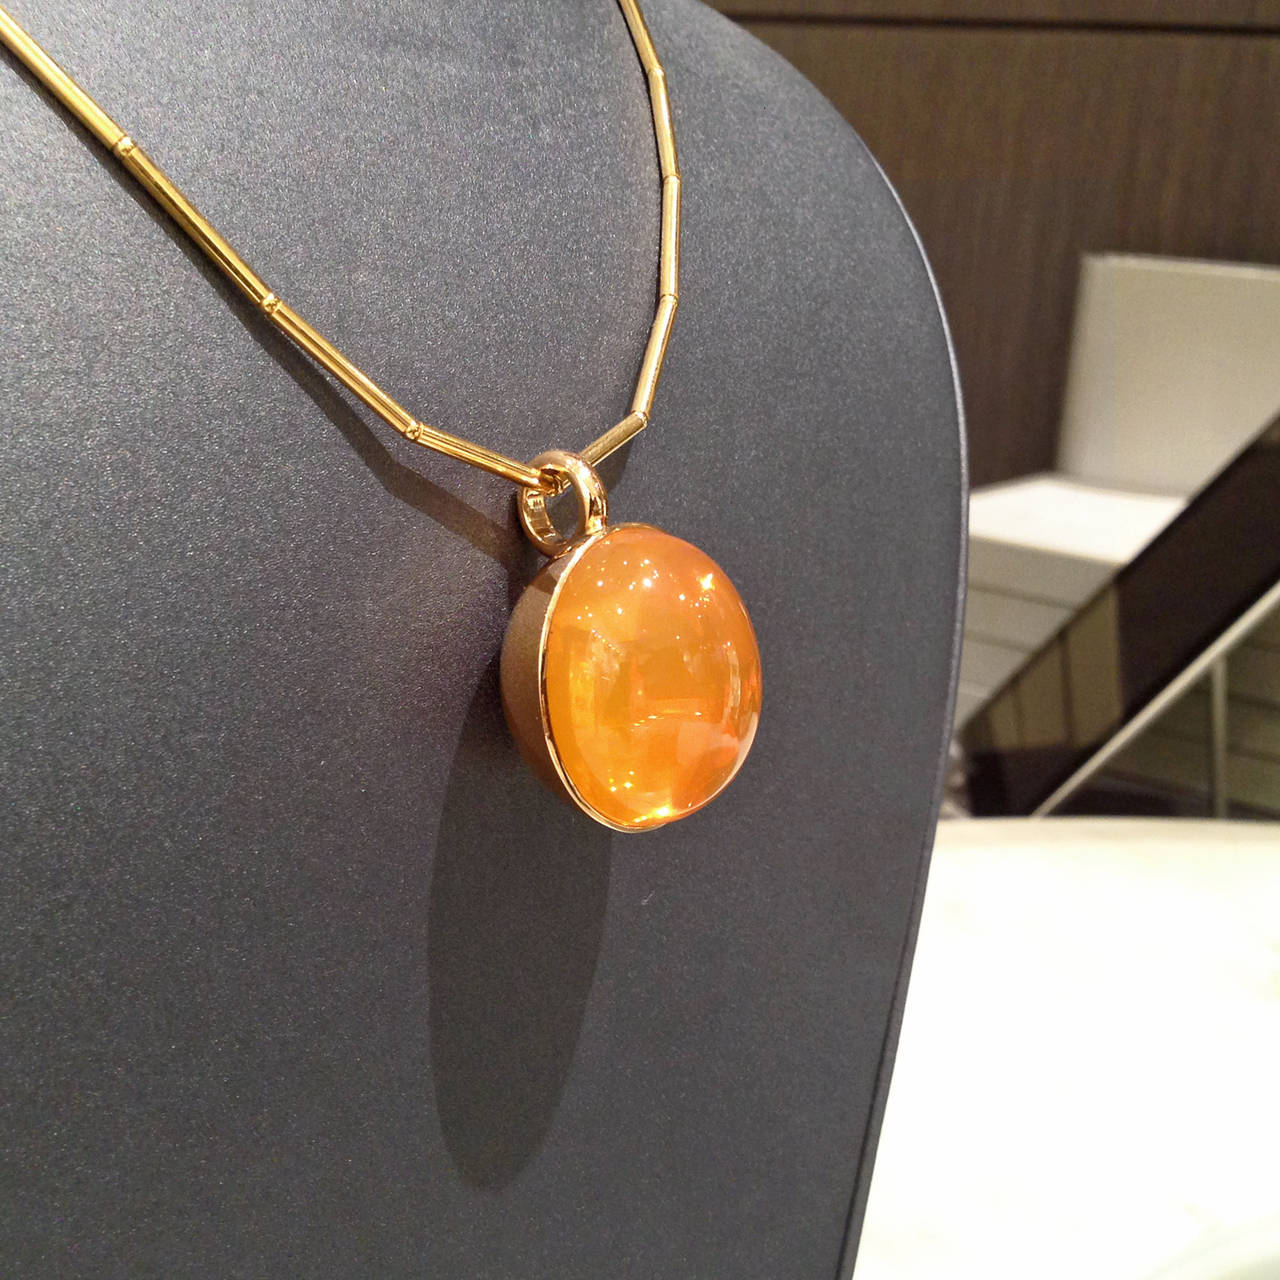 Glowing 50 Carat Fire Opal Gold Bowl Pendant Necklace 5